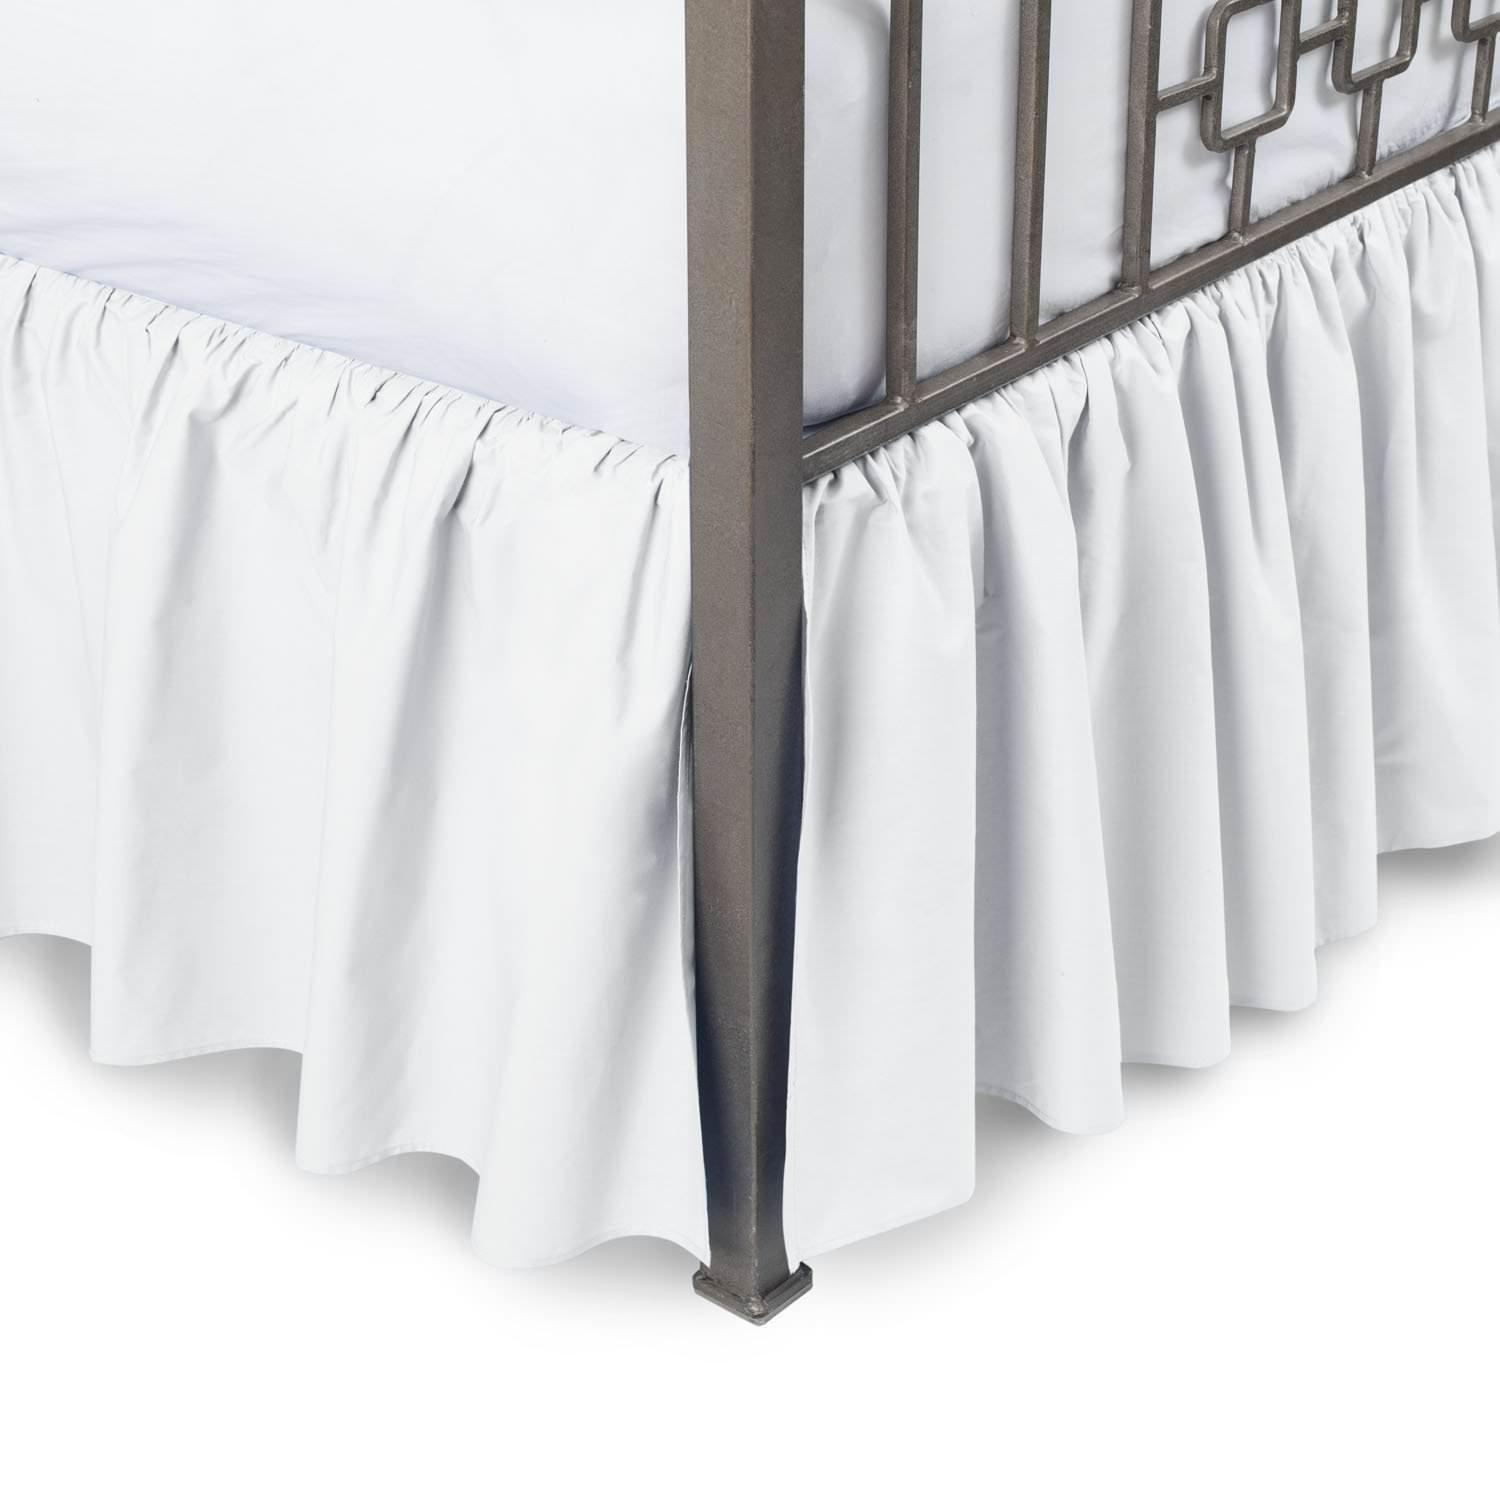 MD Home Decore White Solid, Queen Size Ruffled Bed Skirt, 16 Inch Drop with Split Corners 100% Cotton-600 Thread Count, Easy Fit Gathered Style, 3 Sided Coverage